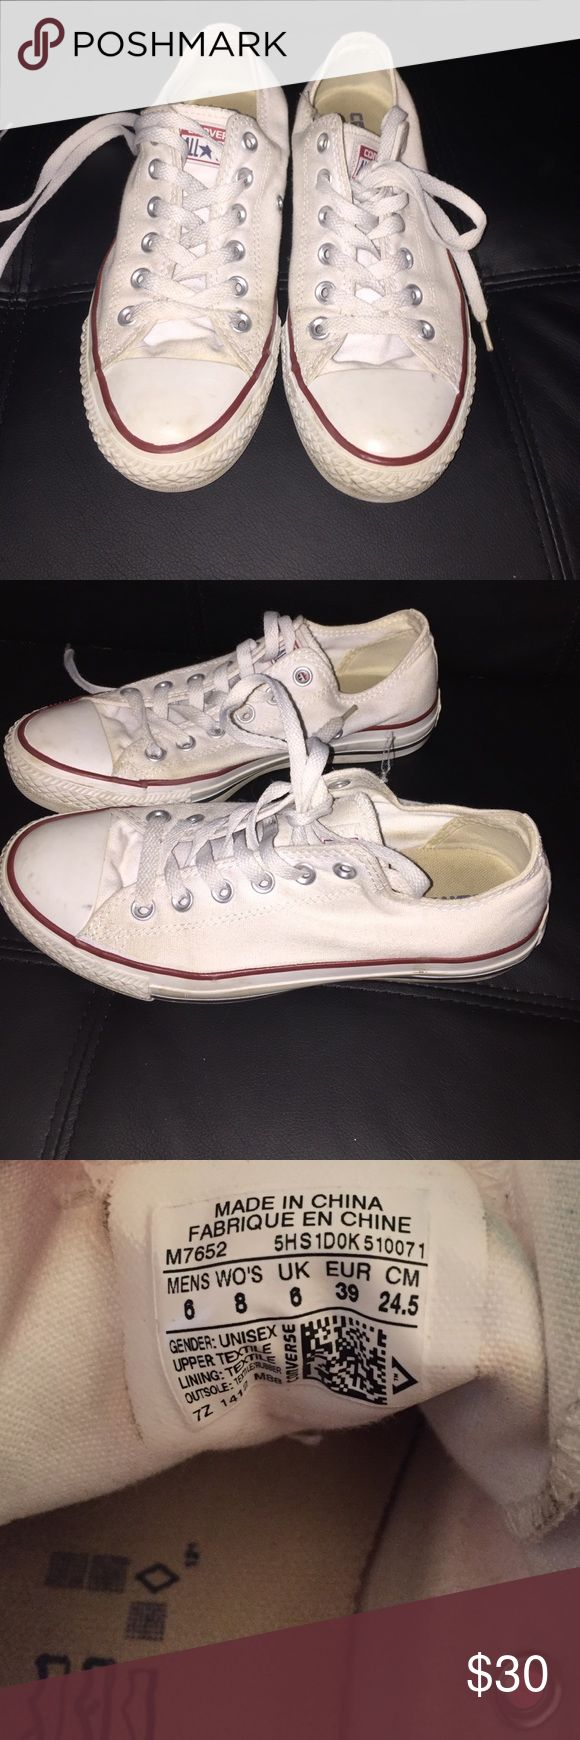 Women's white converse Worn only a few times. Bought too small for me. A little dirty but can easily be cleaned. Converse Shoes